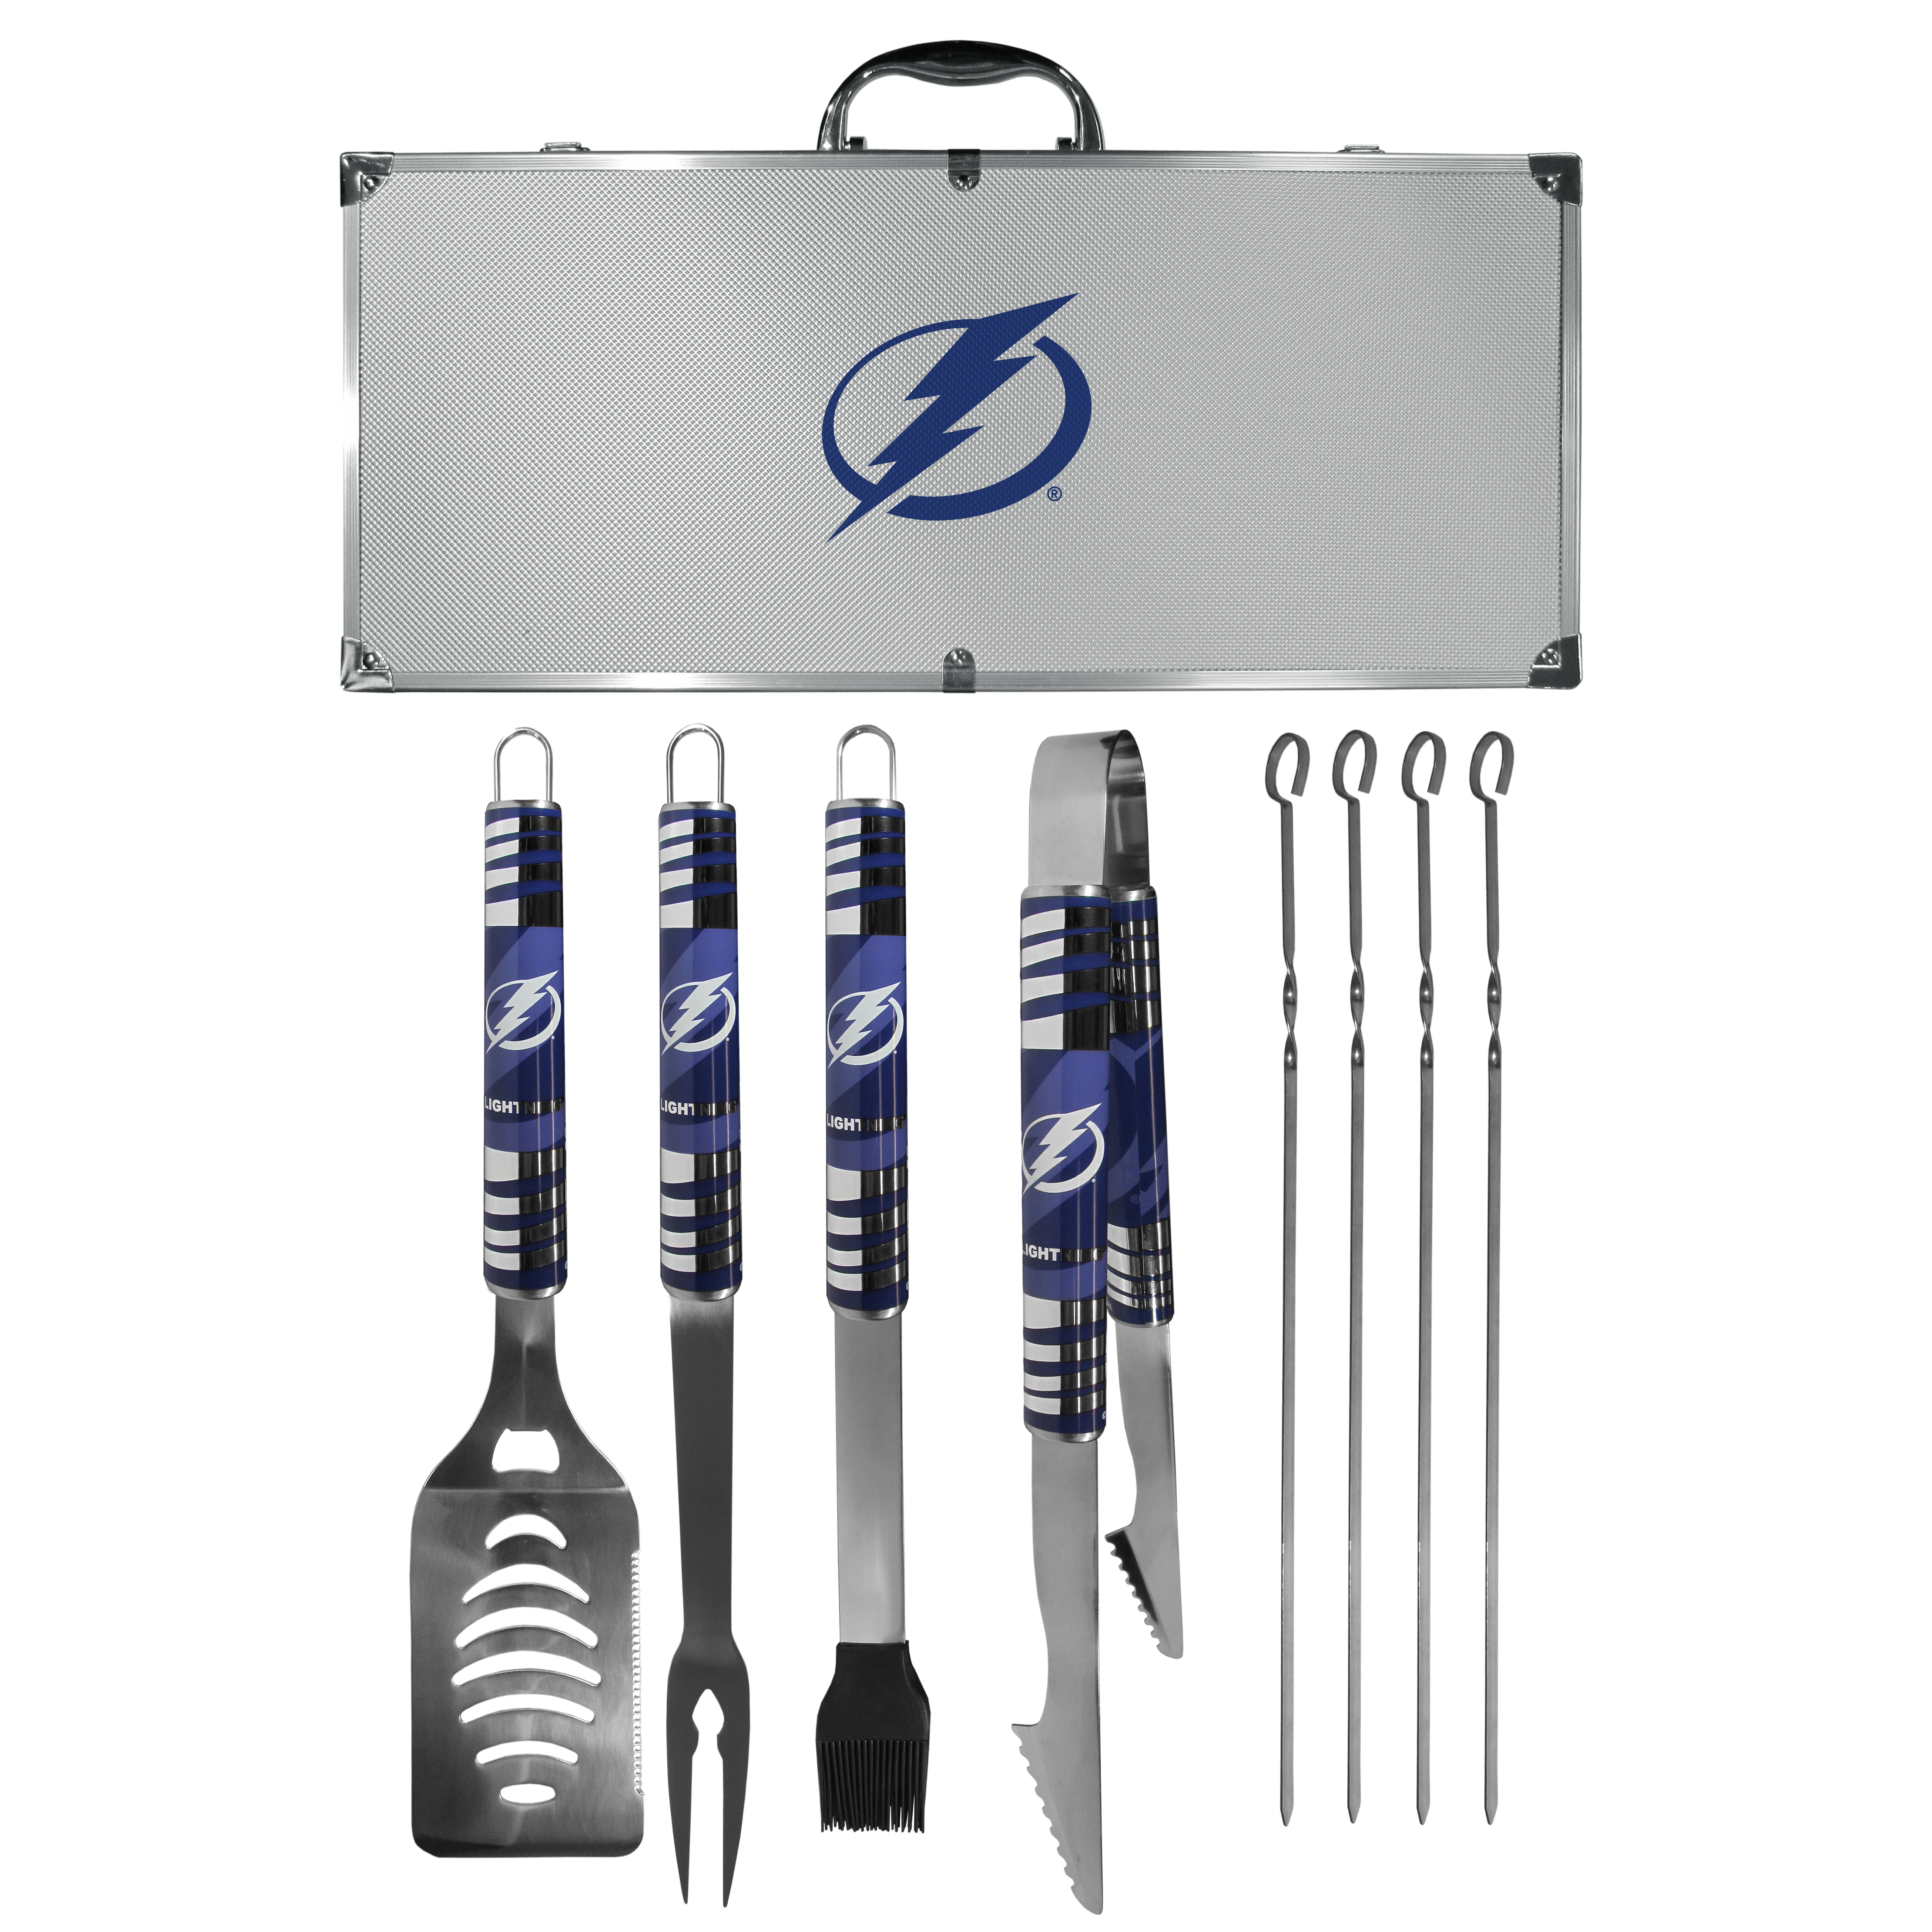 Tampa Bay Lightning® 8 pc Tailgater BBQ Set - This is the ultimate Tampa Bay Lightning® tailgate accessory! The high quality, 420 grade stainless steel tools are durable and well-made enough to make even the pickiest grill master smile. This complete grill accessory kit includes; 4 skewers, spatula with bottle opener and serrated knife edge, basting brush, tongs and a fork. The 18 inch metal carrying case is perfect for great outdoor use making grilling an ease while camping, tailgating or while having a game day party on your patio. The tools are 17 inches long and feature vivid team graphics. The metal case features a large team emblem with exceptional detail. This high-end men's gift is sure to be a hit as a present on Father's Day or Christmas.